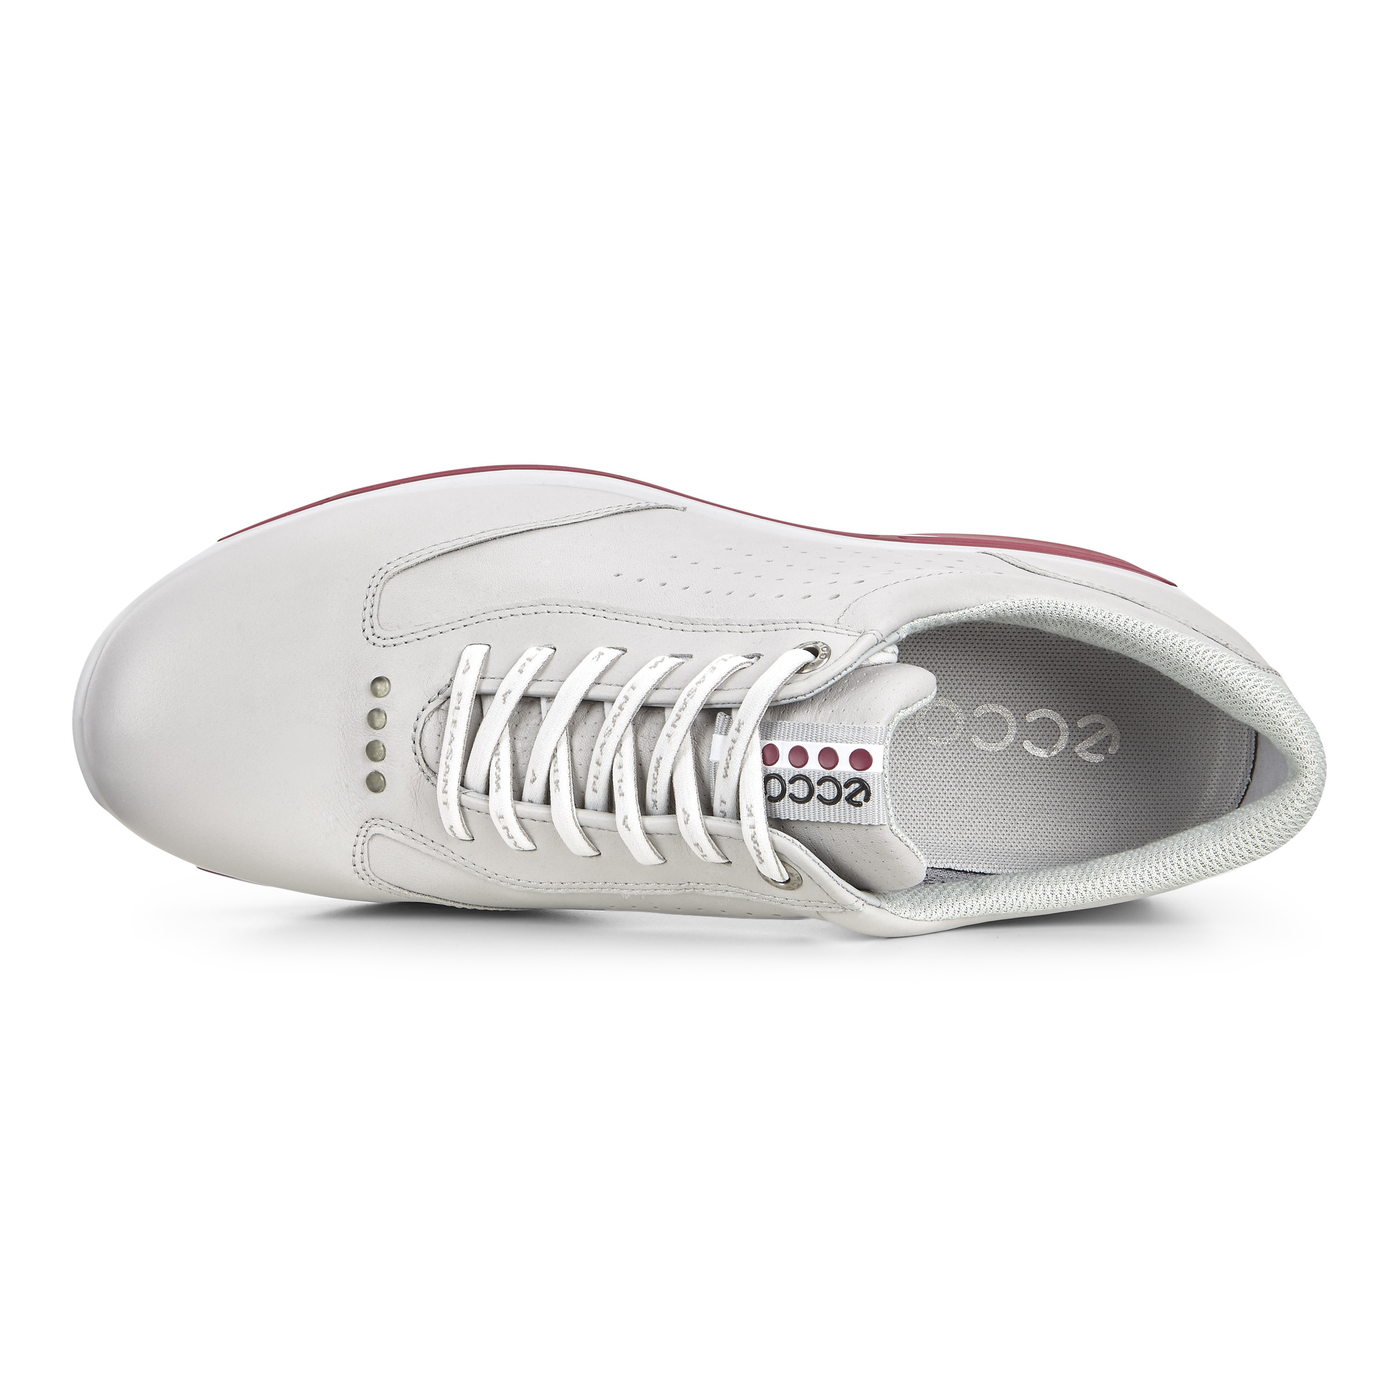 ECCO COOL GOLF Mens GTX